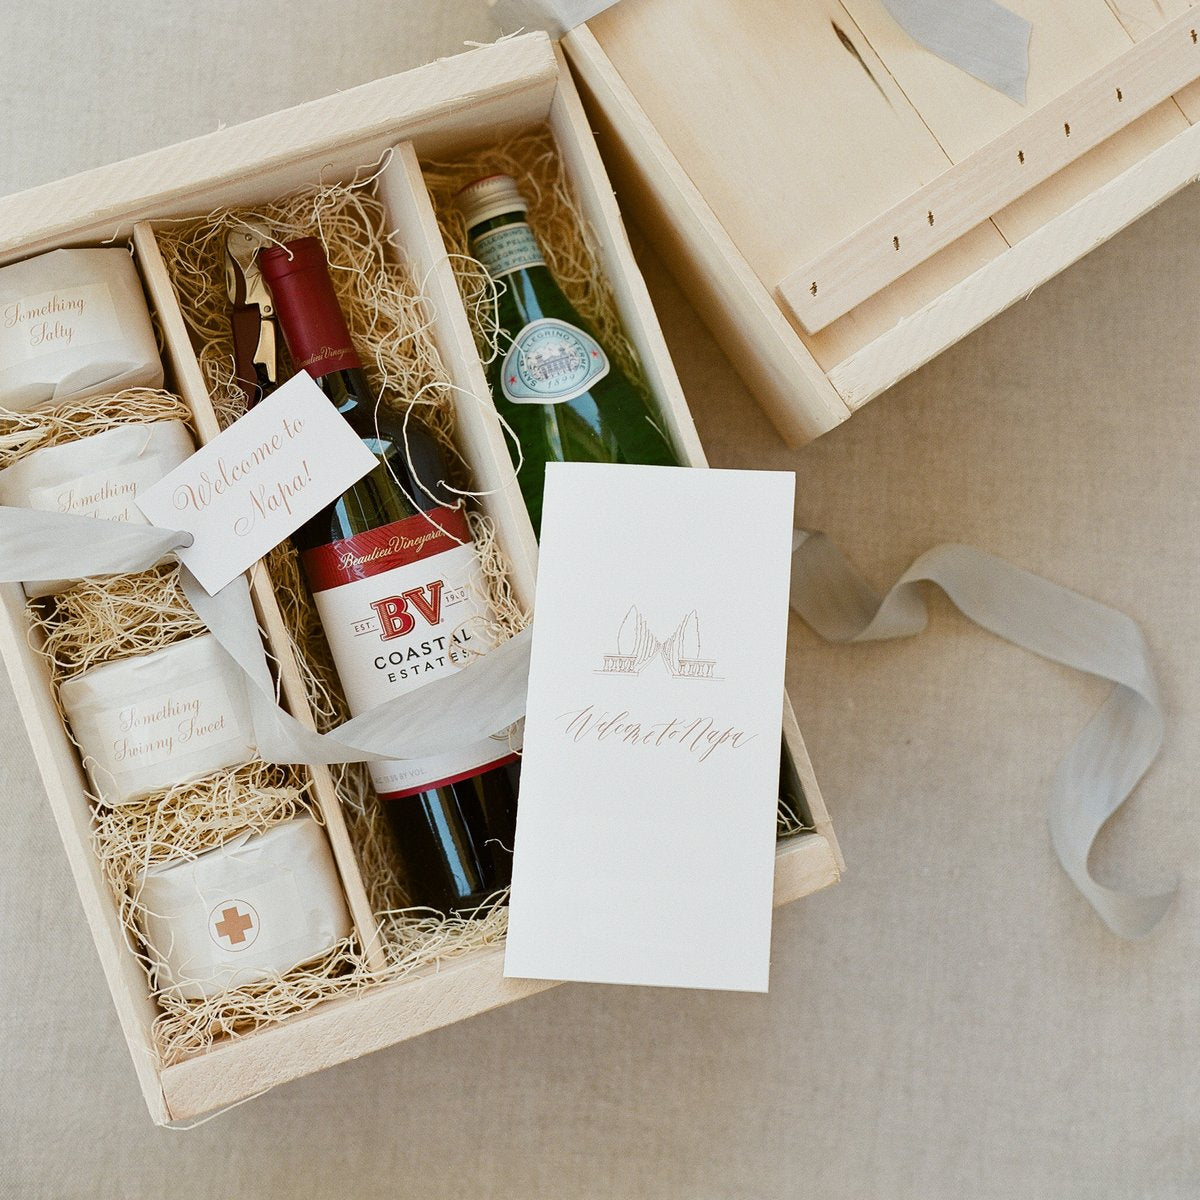 A Signature Welcome: A gifting company, curating gifts that celebrate.